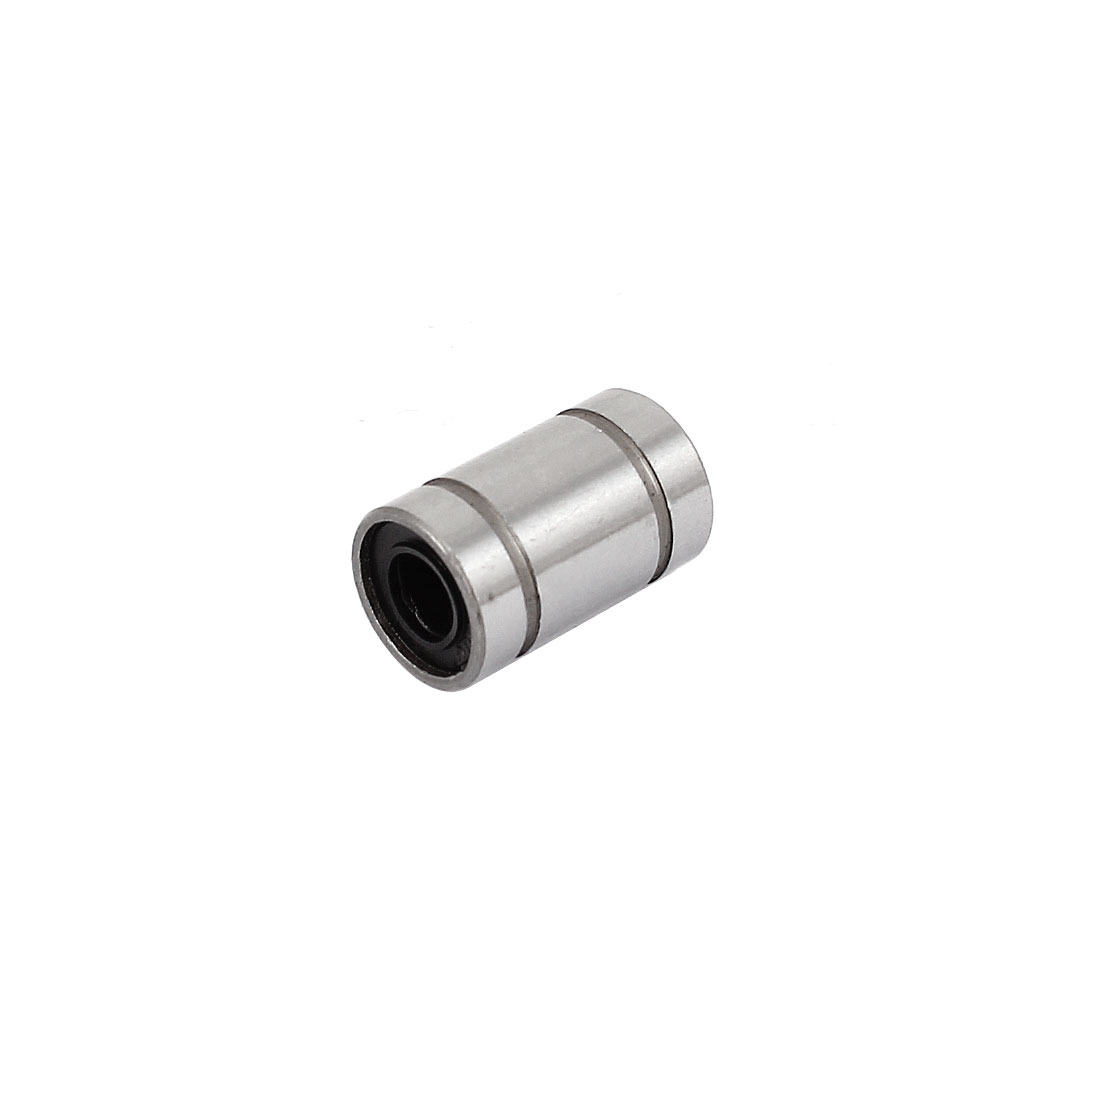 LM6UU Silver Tone Carbon Steel Sealed Rubber Cylinder Shaped Linear Ball Bearing